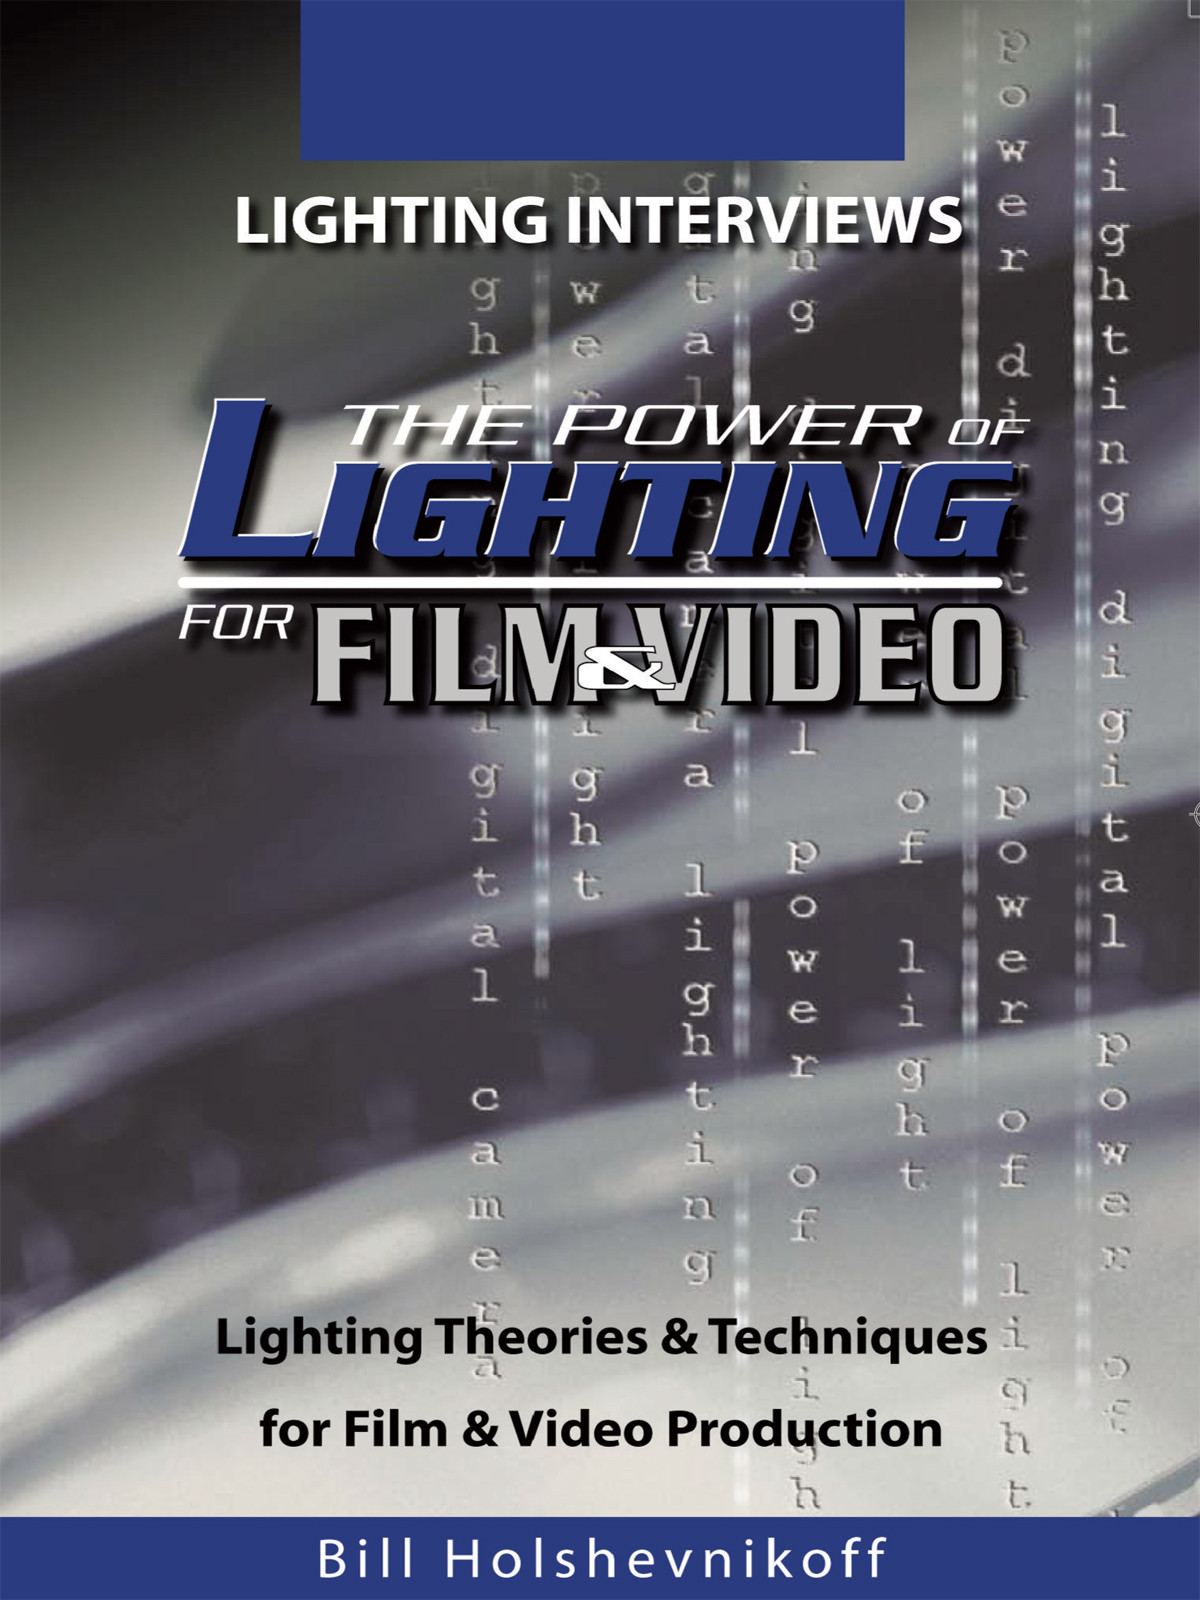 F2670 - Power Of Lighting For Film & Video Lighting Interviews